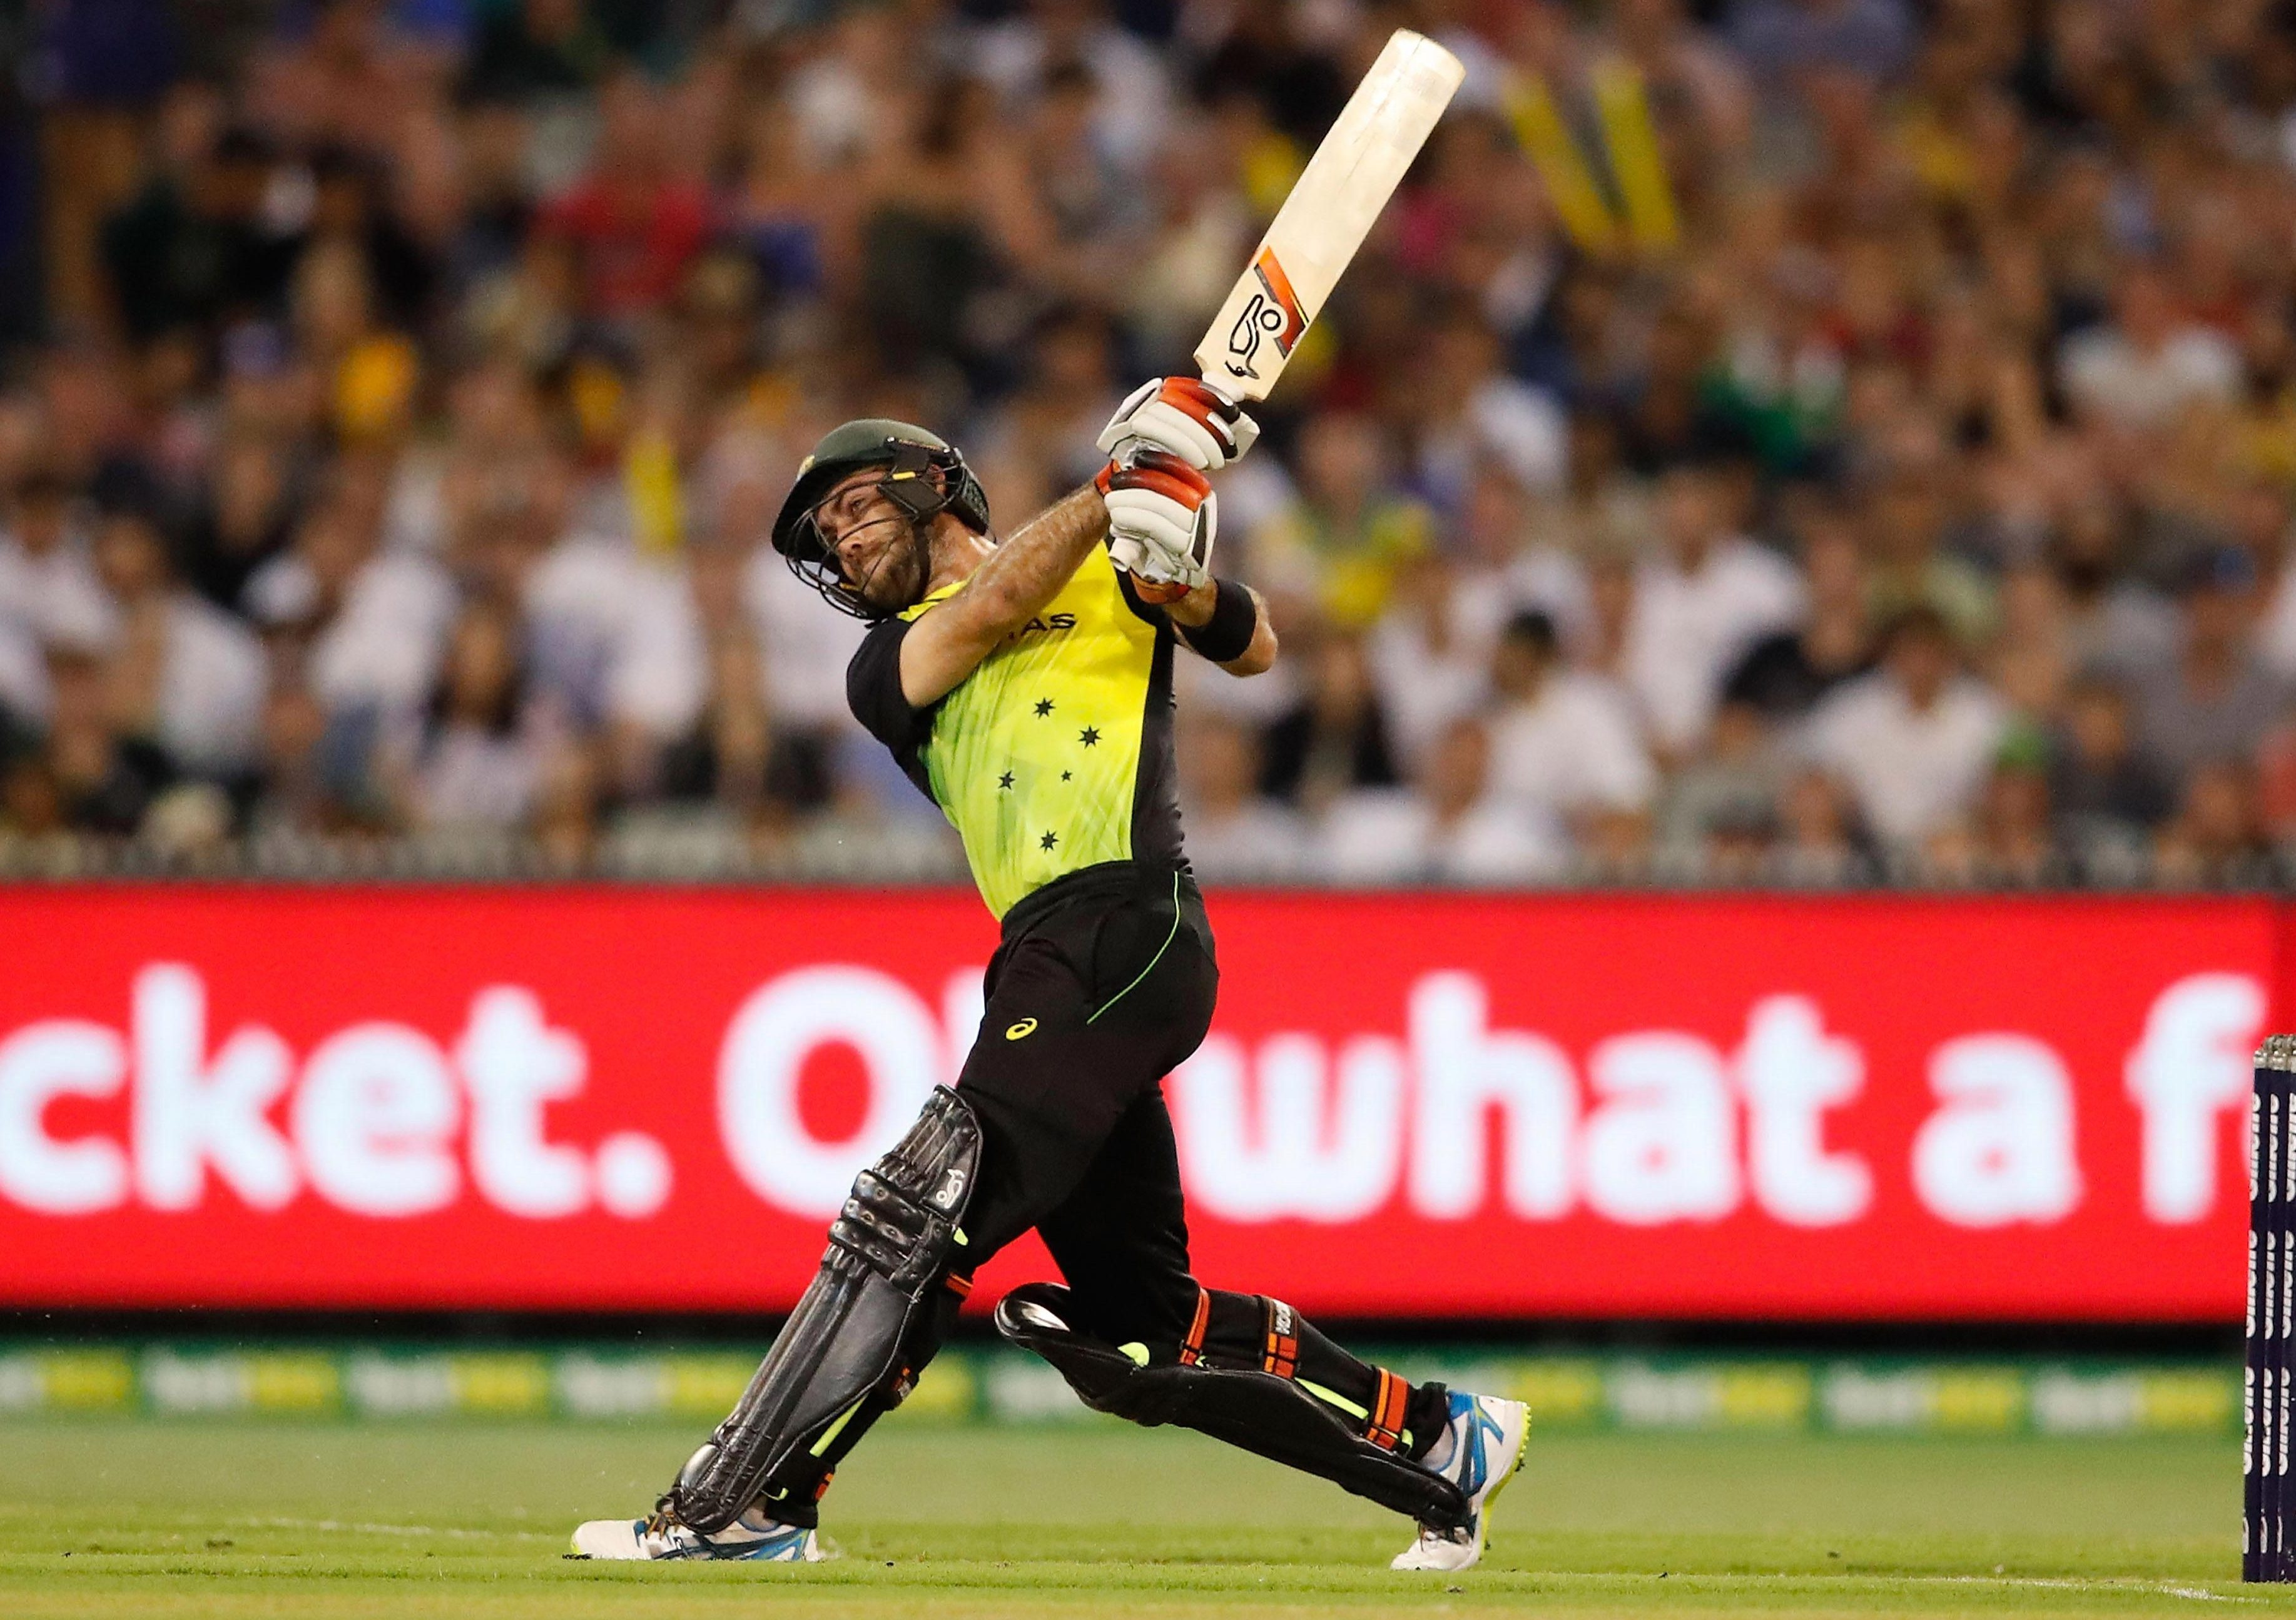 Glenn Maxwell blasted a rapid 39 from just 26 balls en route to victory